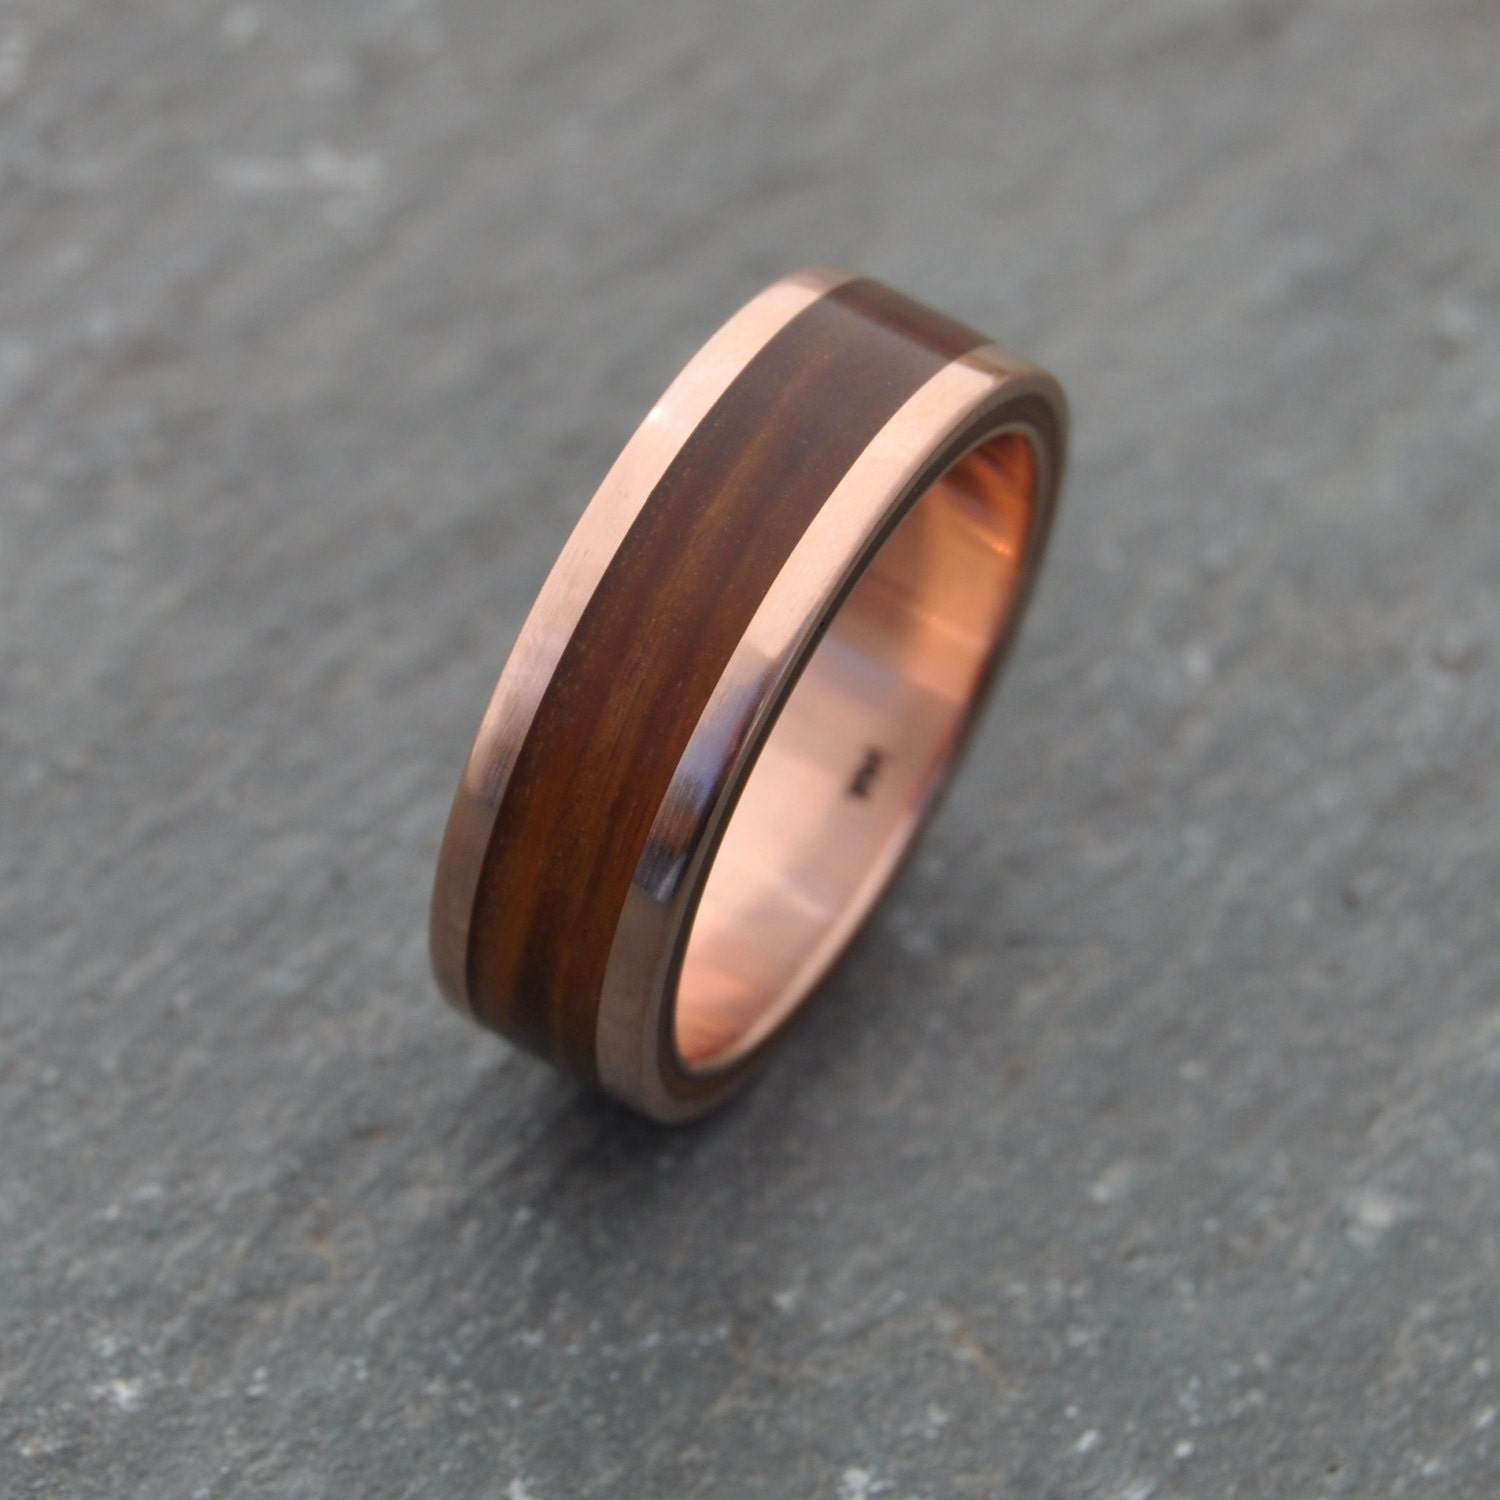 Rose Gold Wood Ring Lados Guayacan Ecofriendly Wood Wedding Band